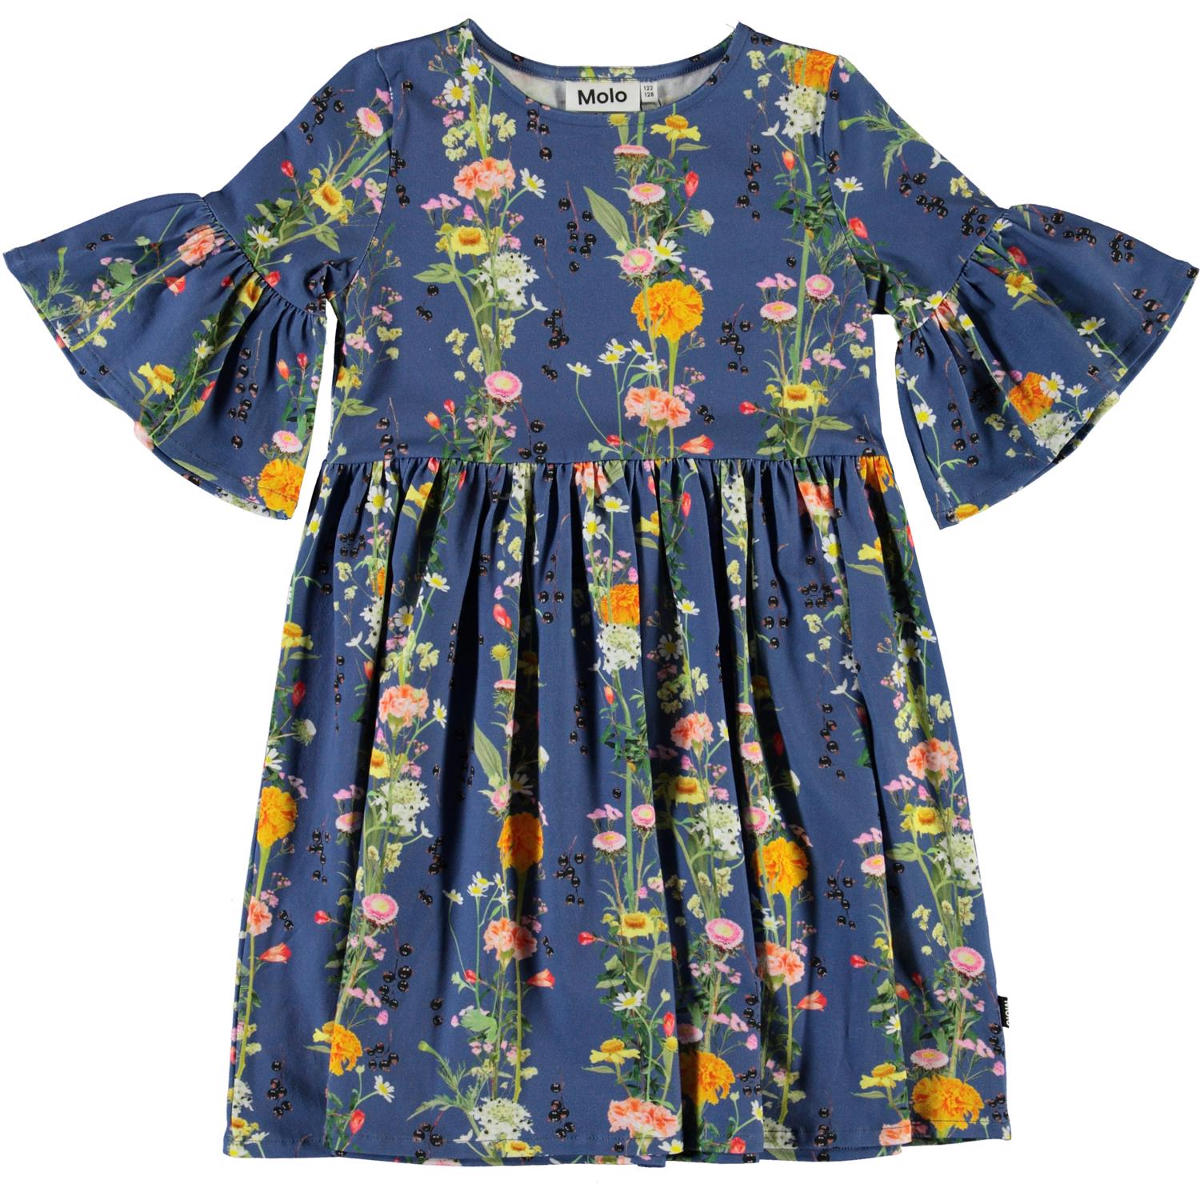 Molo Blue Flower Chasity Dress